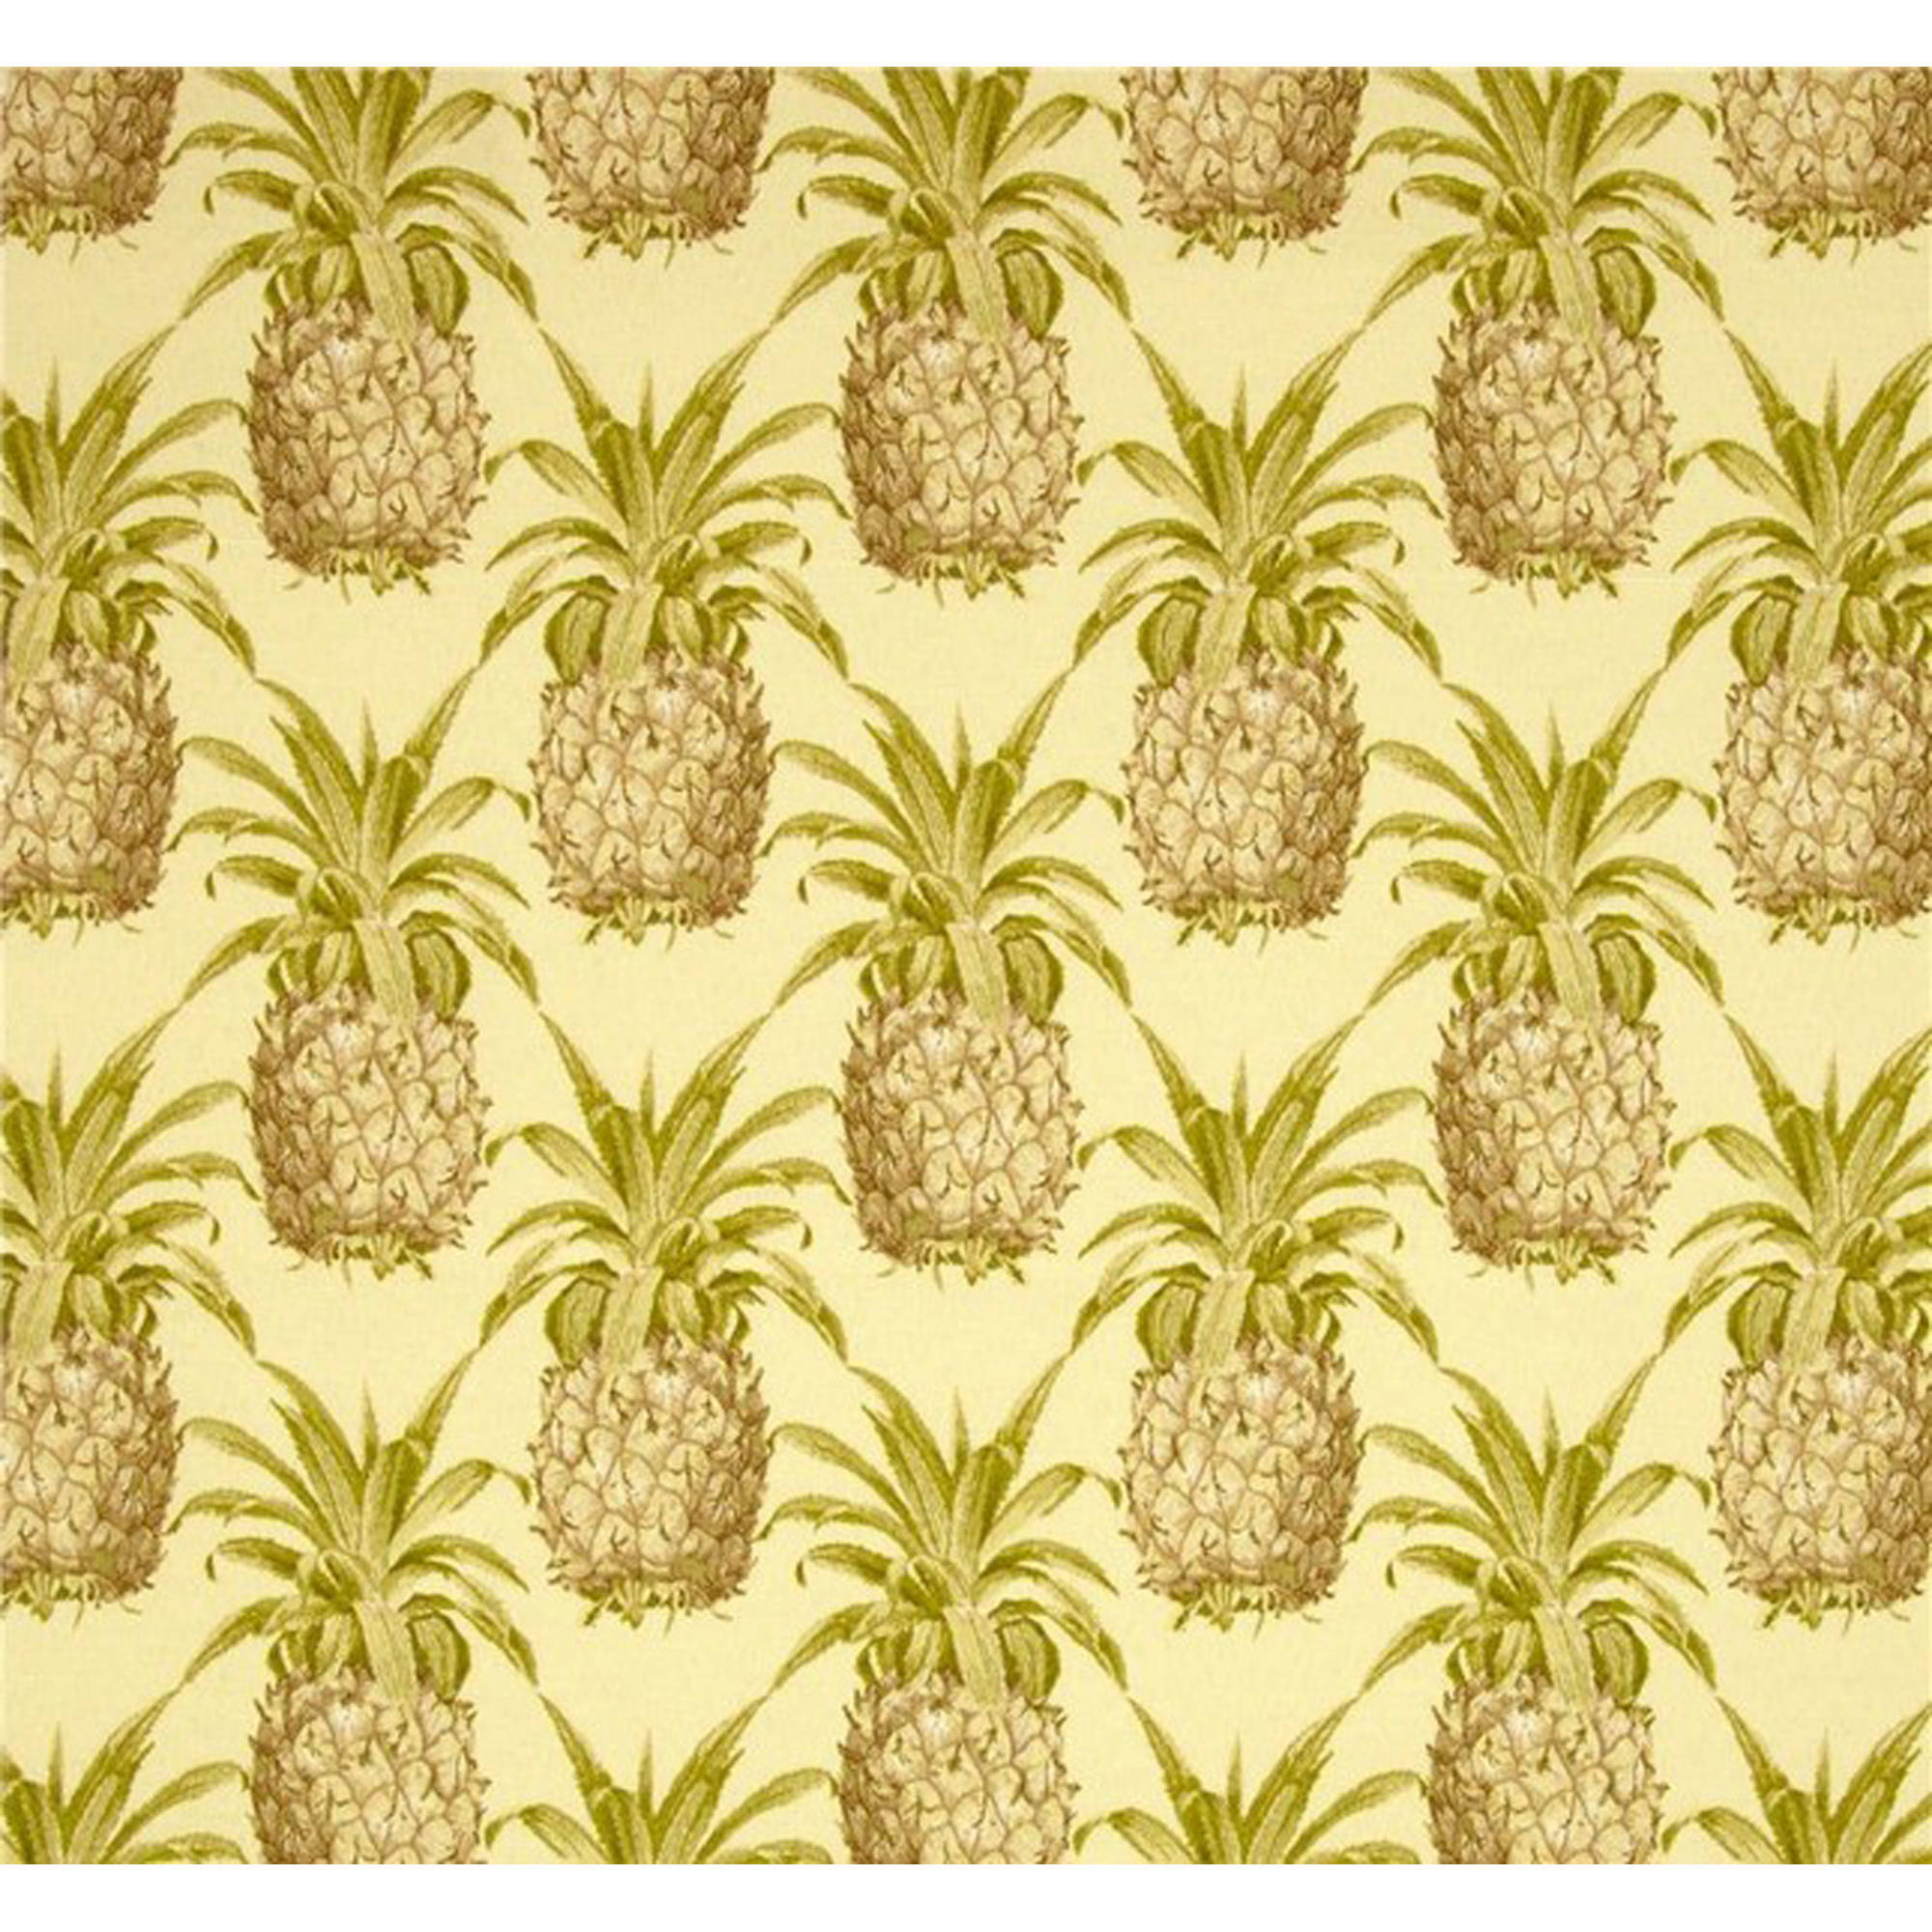 Jordan Manufacturing Outdoor Fabric by the Yard, Pineapple Grove